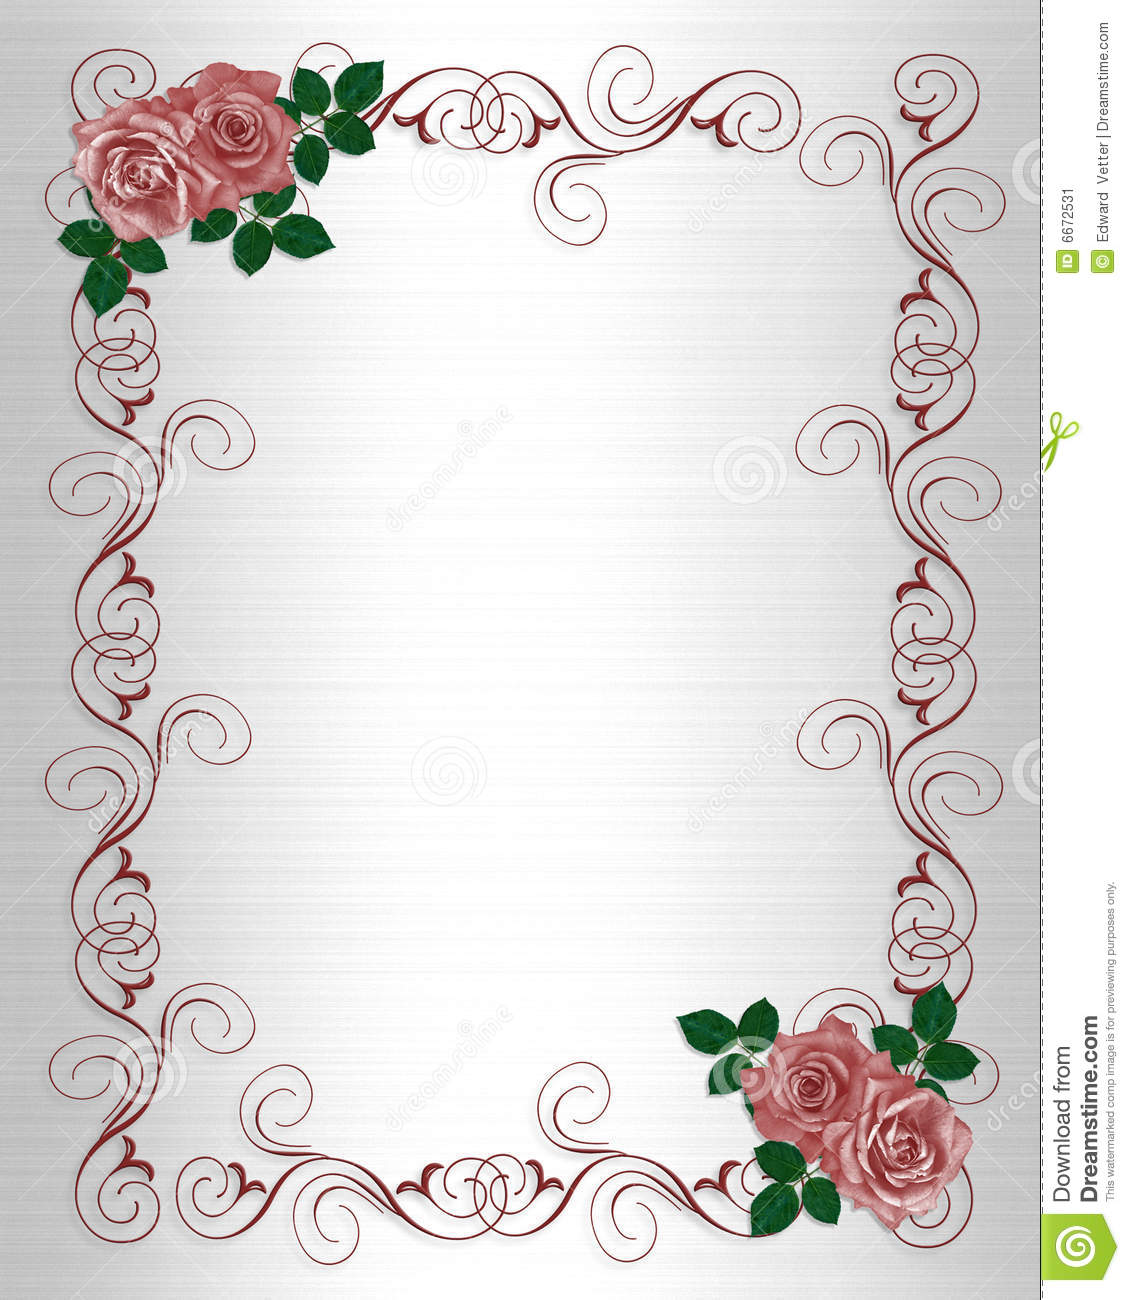 Wedding Invitation Template Red Roses Stock Image - Image: 6672531